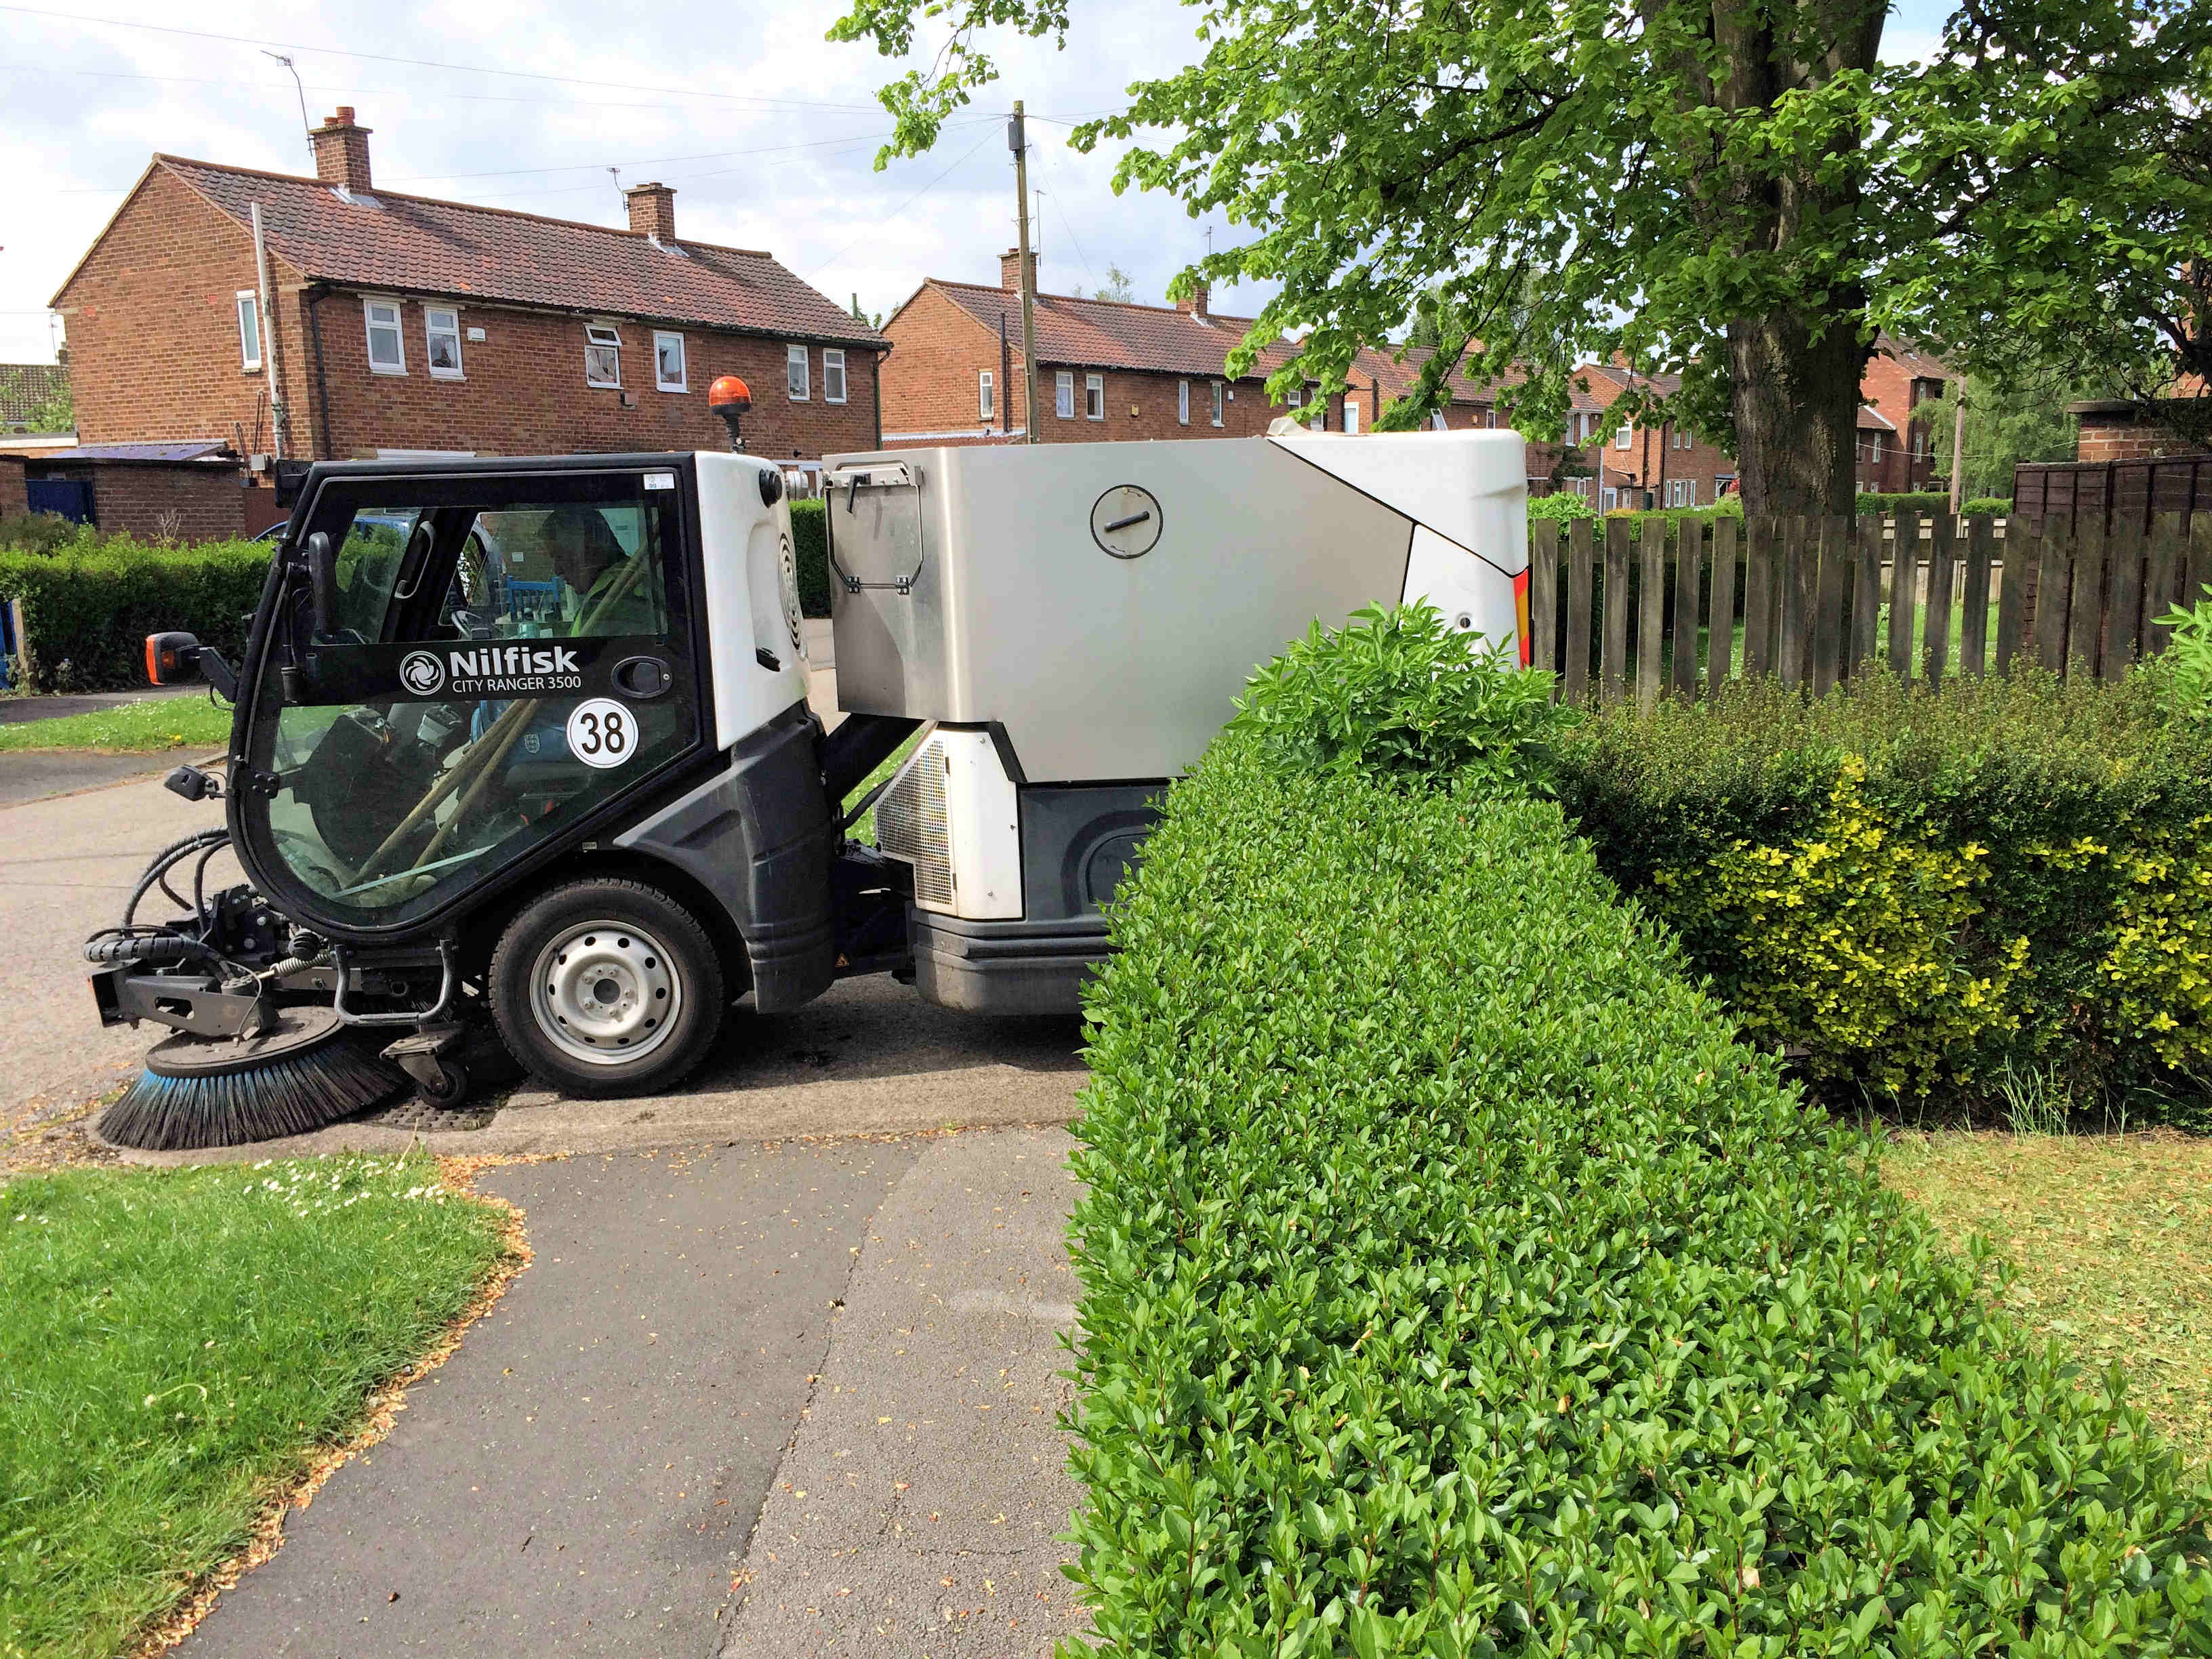 Street sweeper cleaning garage area in Thoresby Road